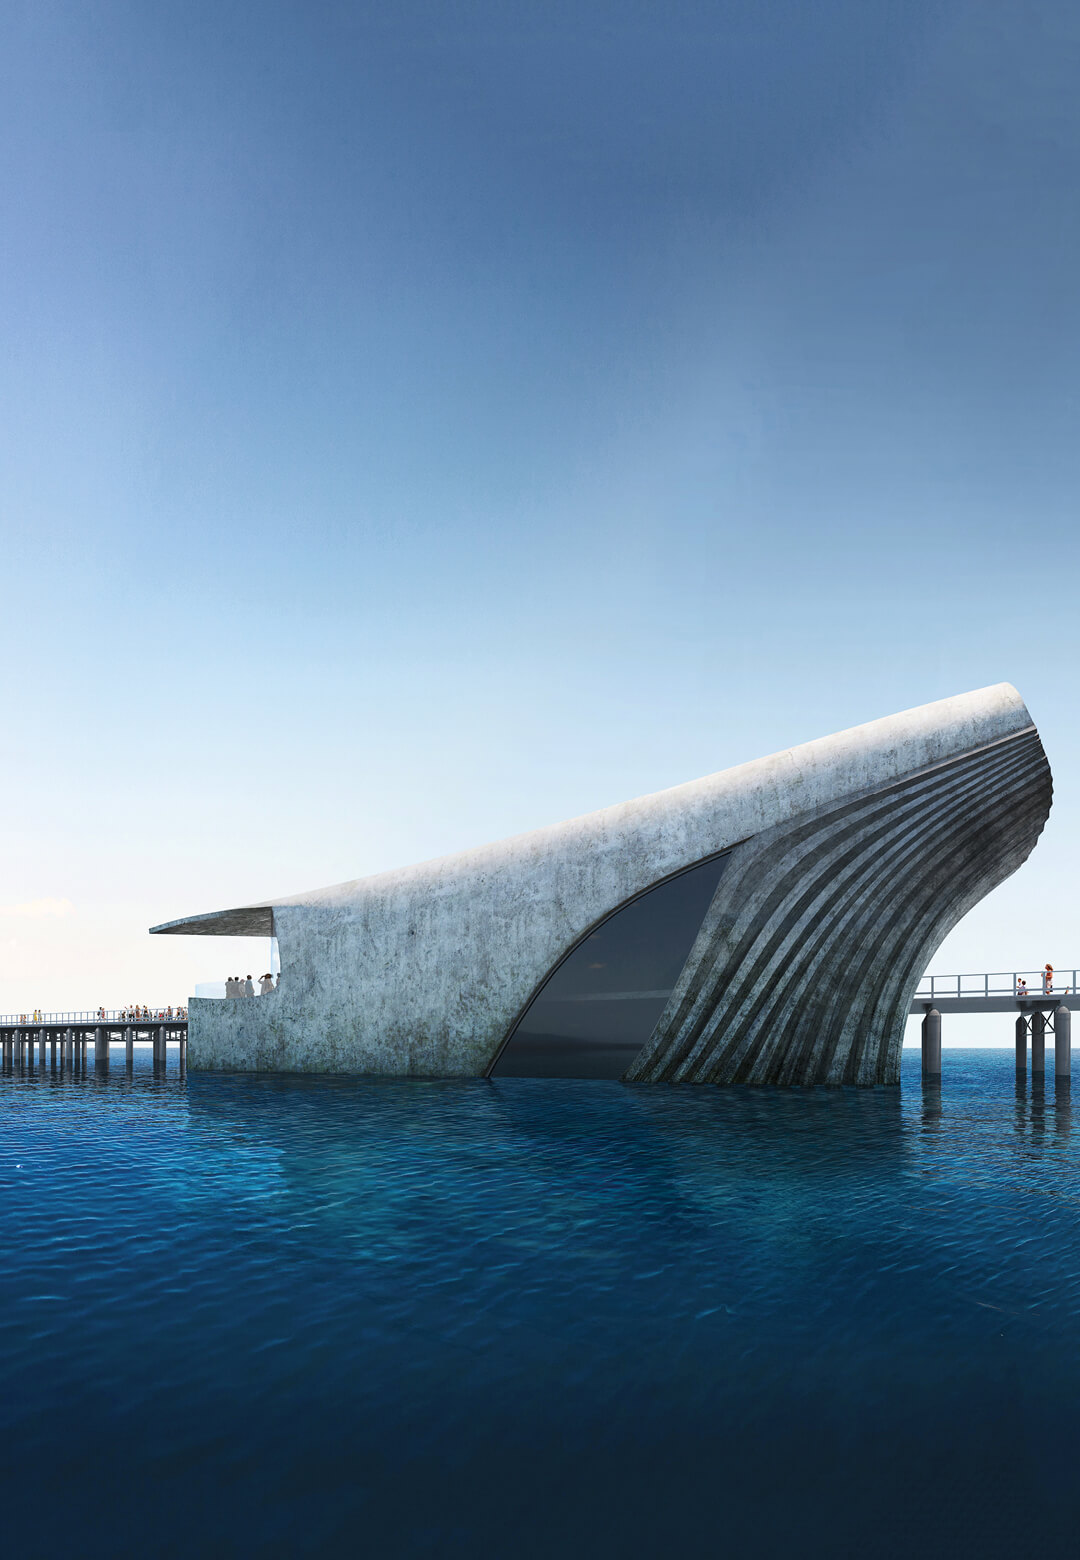 Baca Architects will build the whale shaped Australian Underwater Discovery Centre | Australian Underwater Discovery Centre by Baca Architects | STIRworld